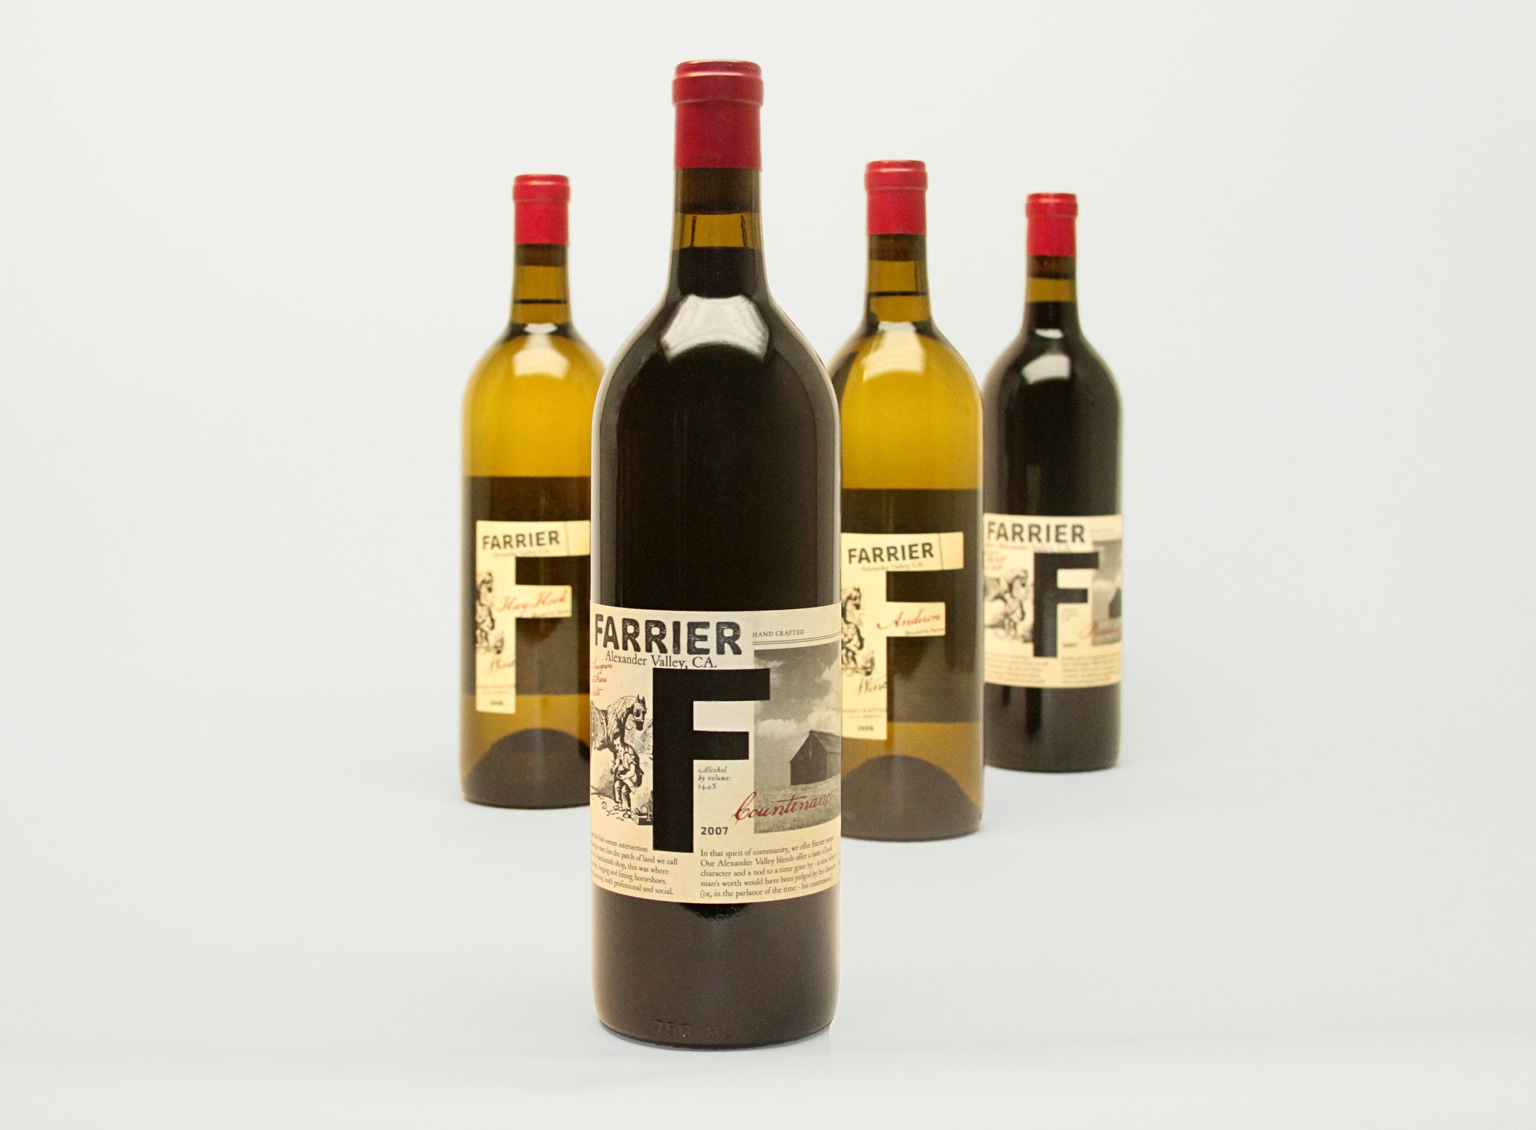 Farrier Wine Co. packaging